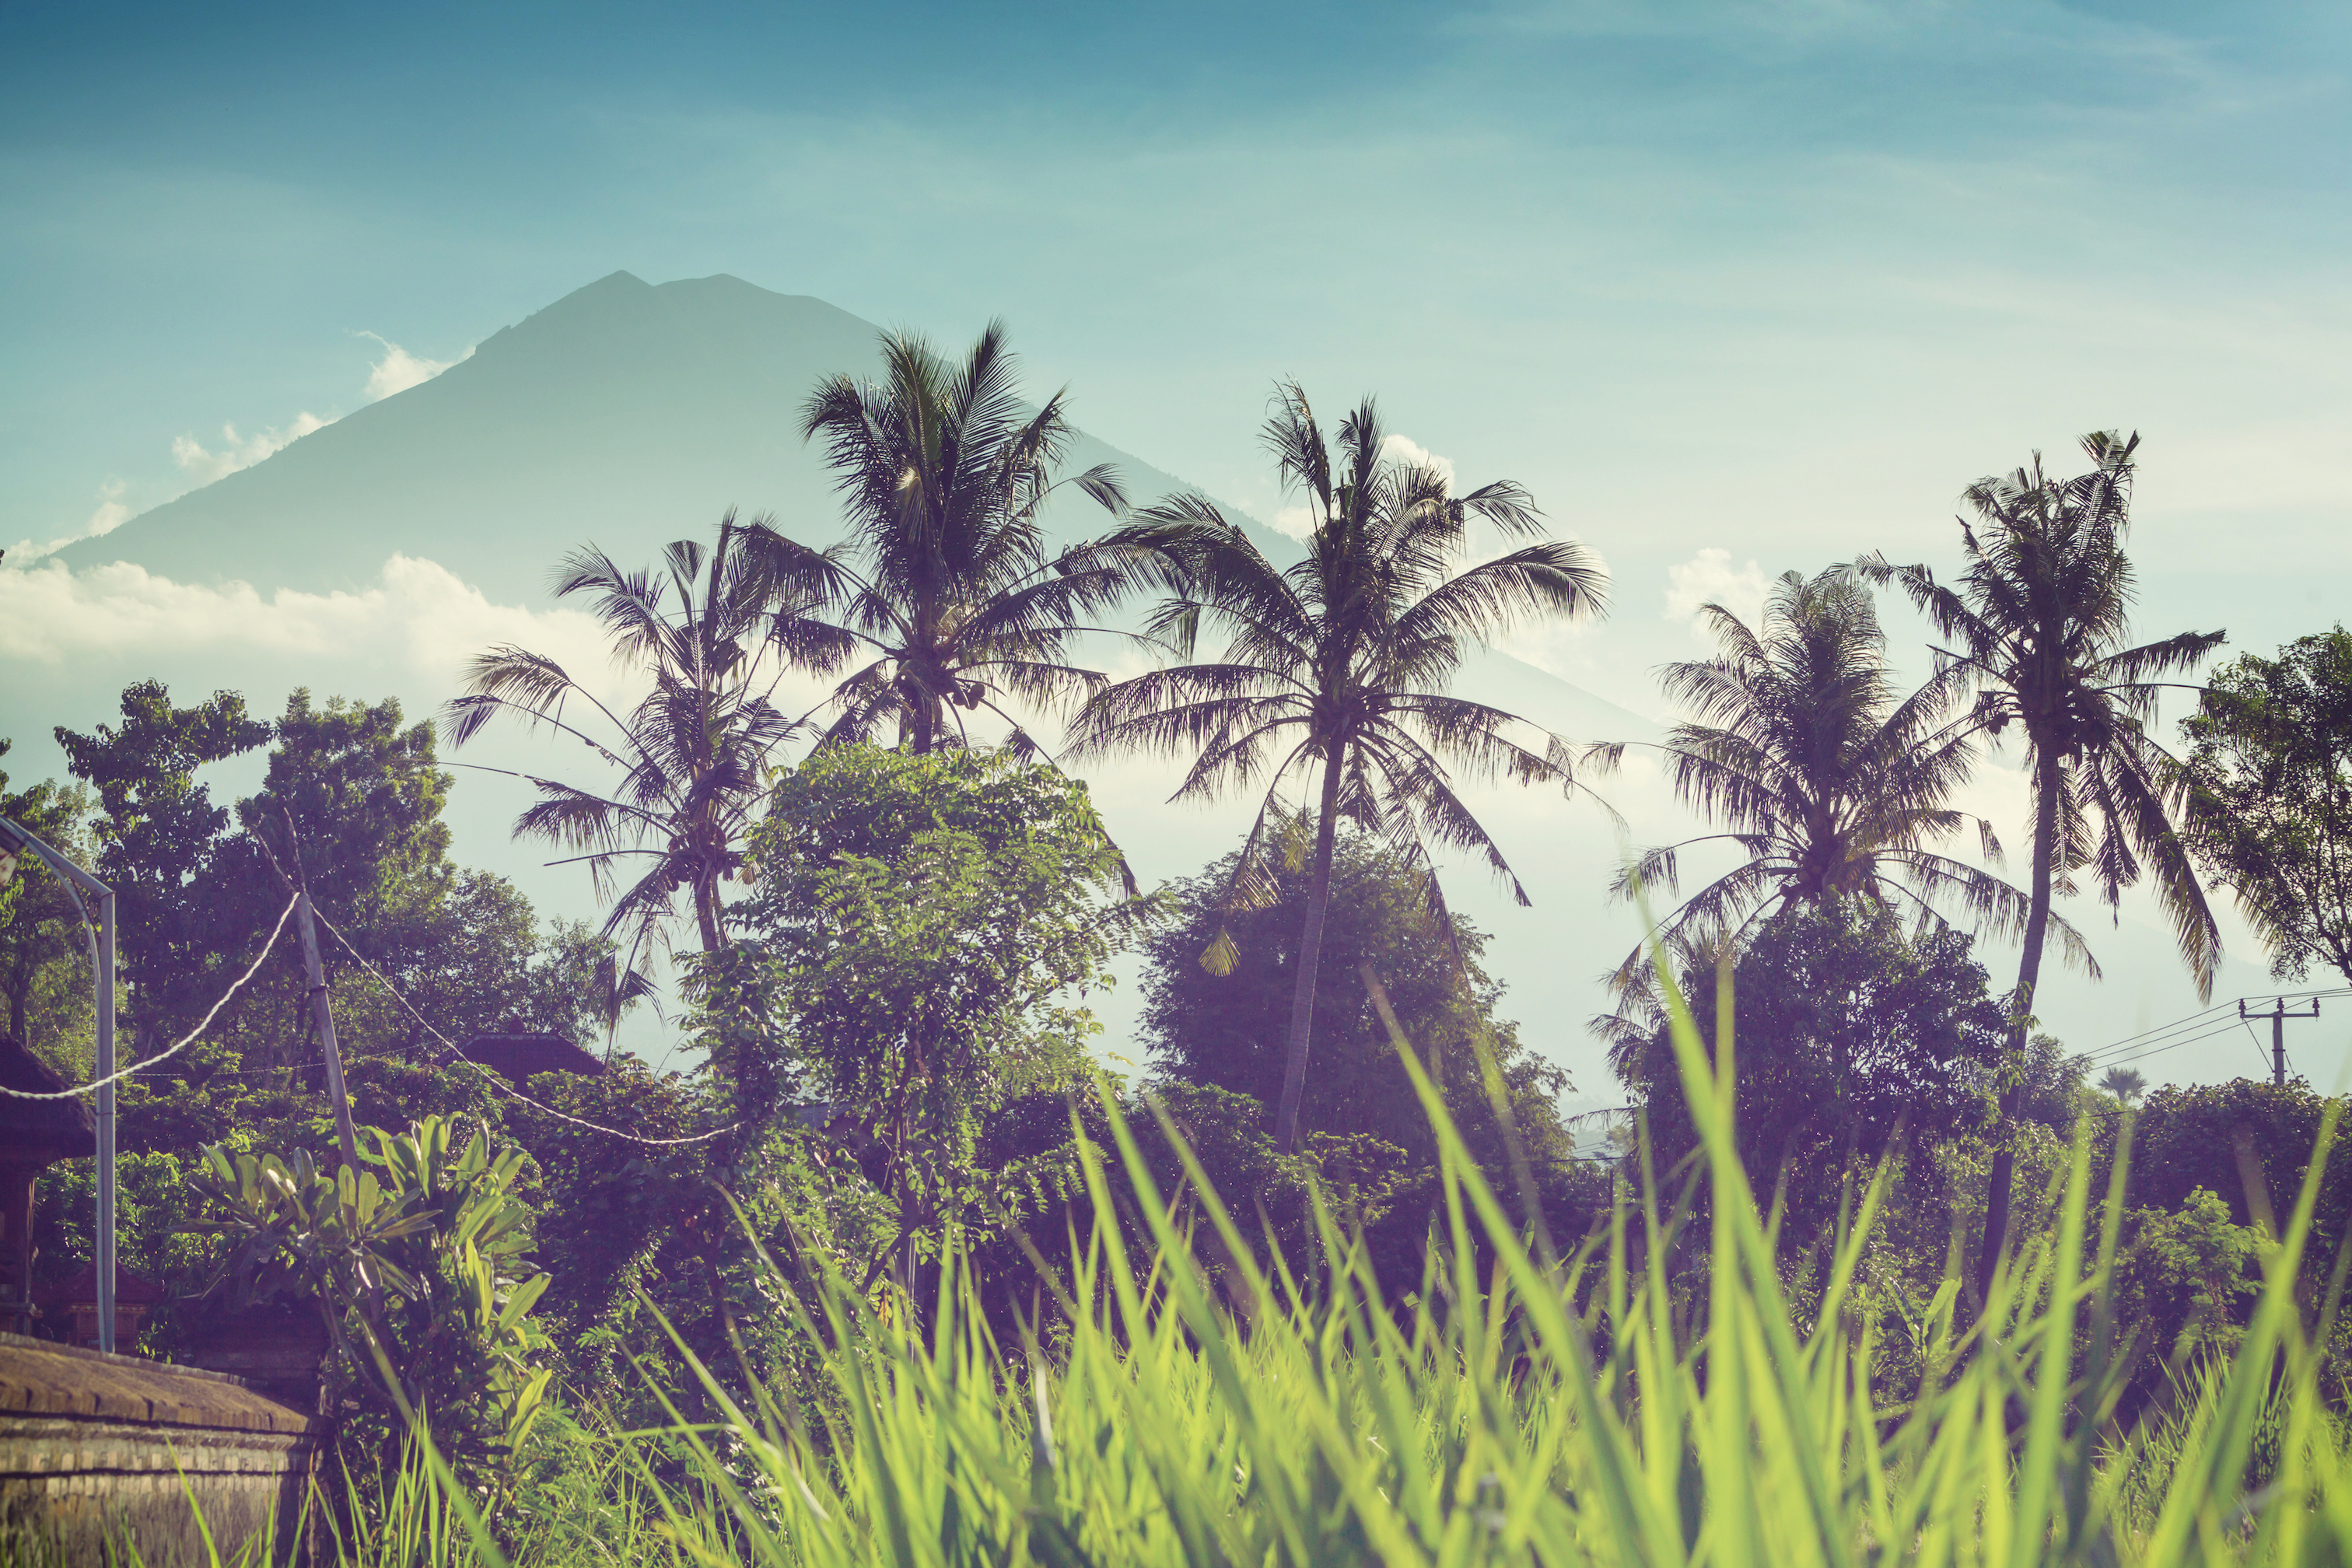 Soak in the beautiful landscape of Bali as you learn in a supported space